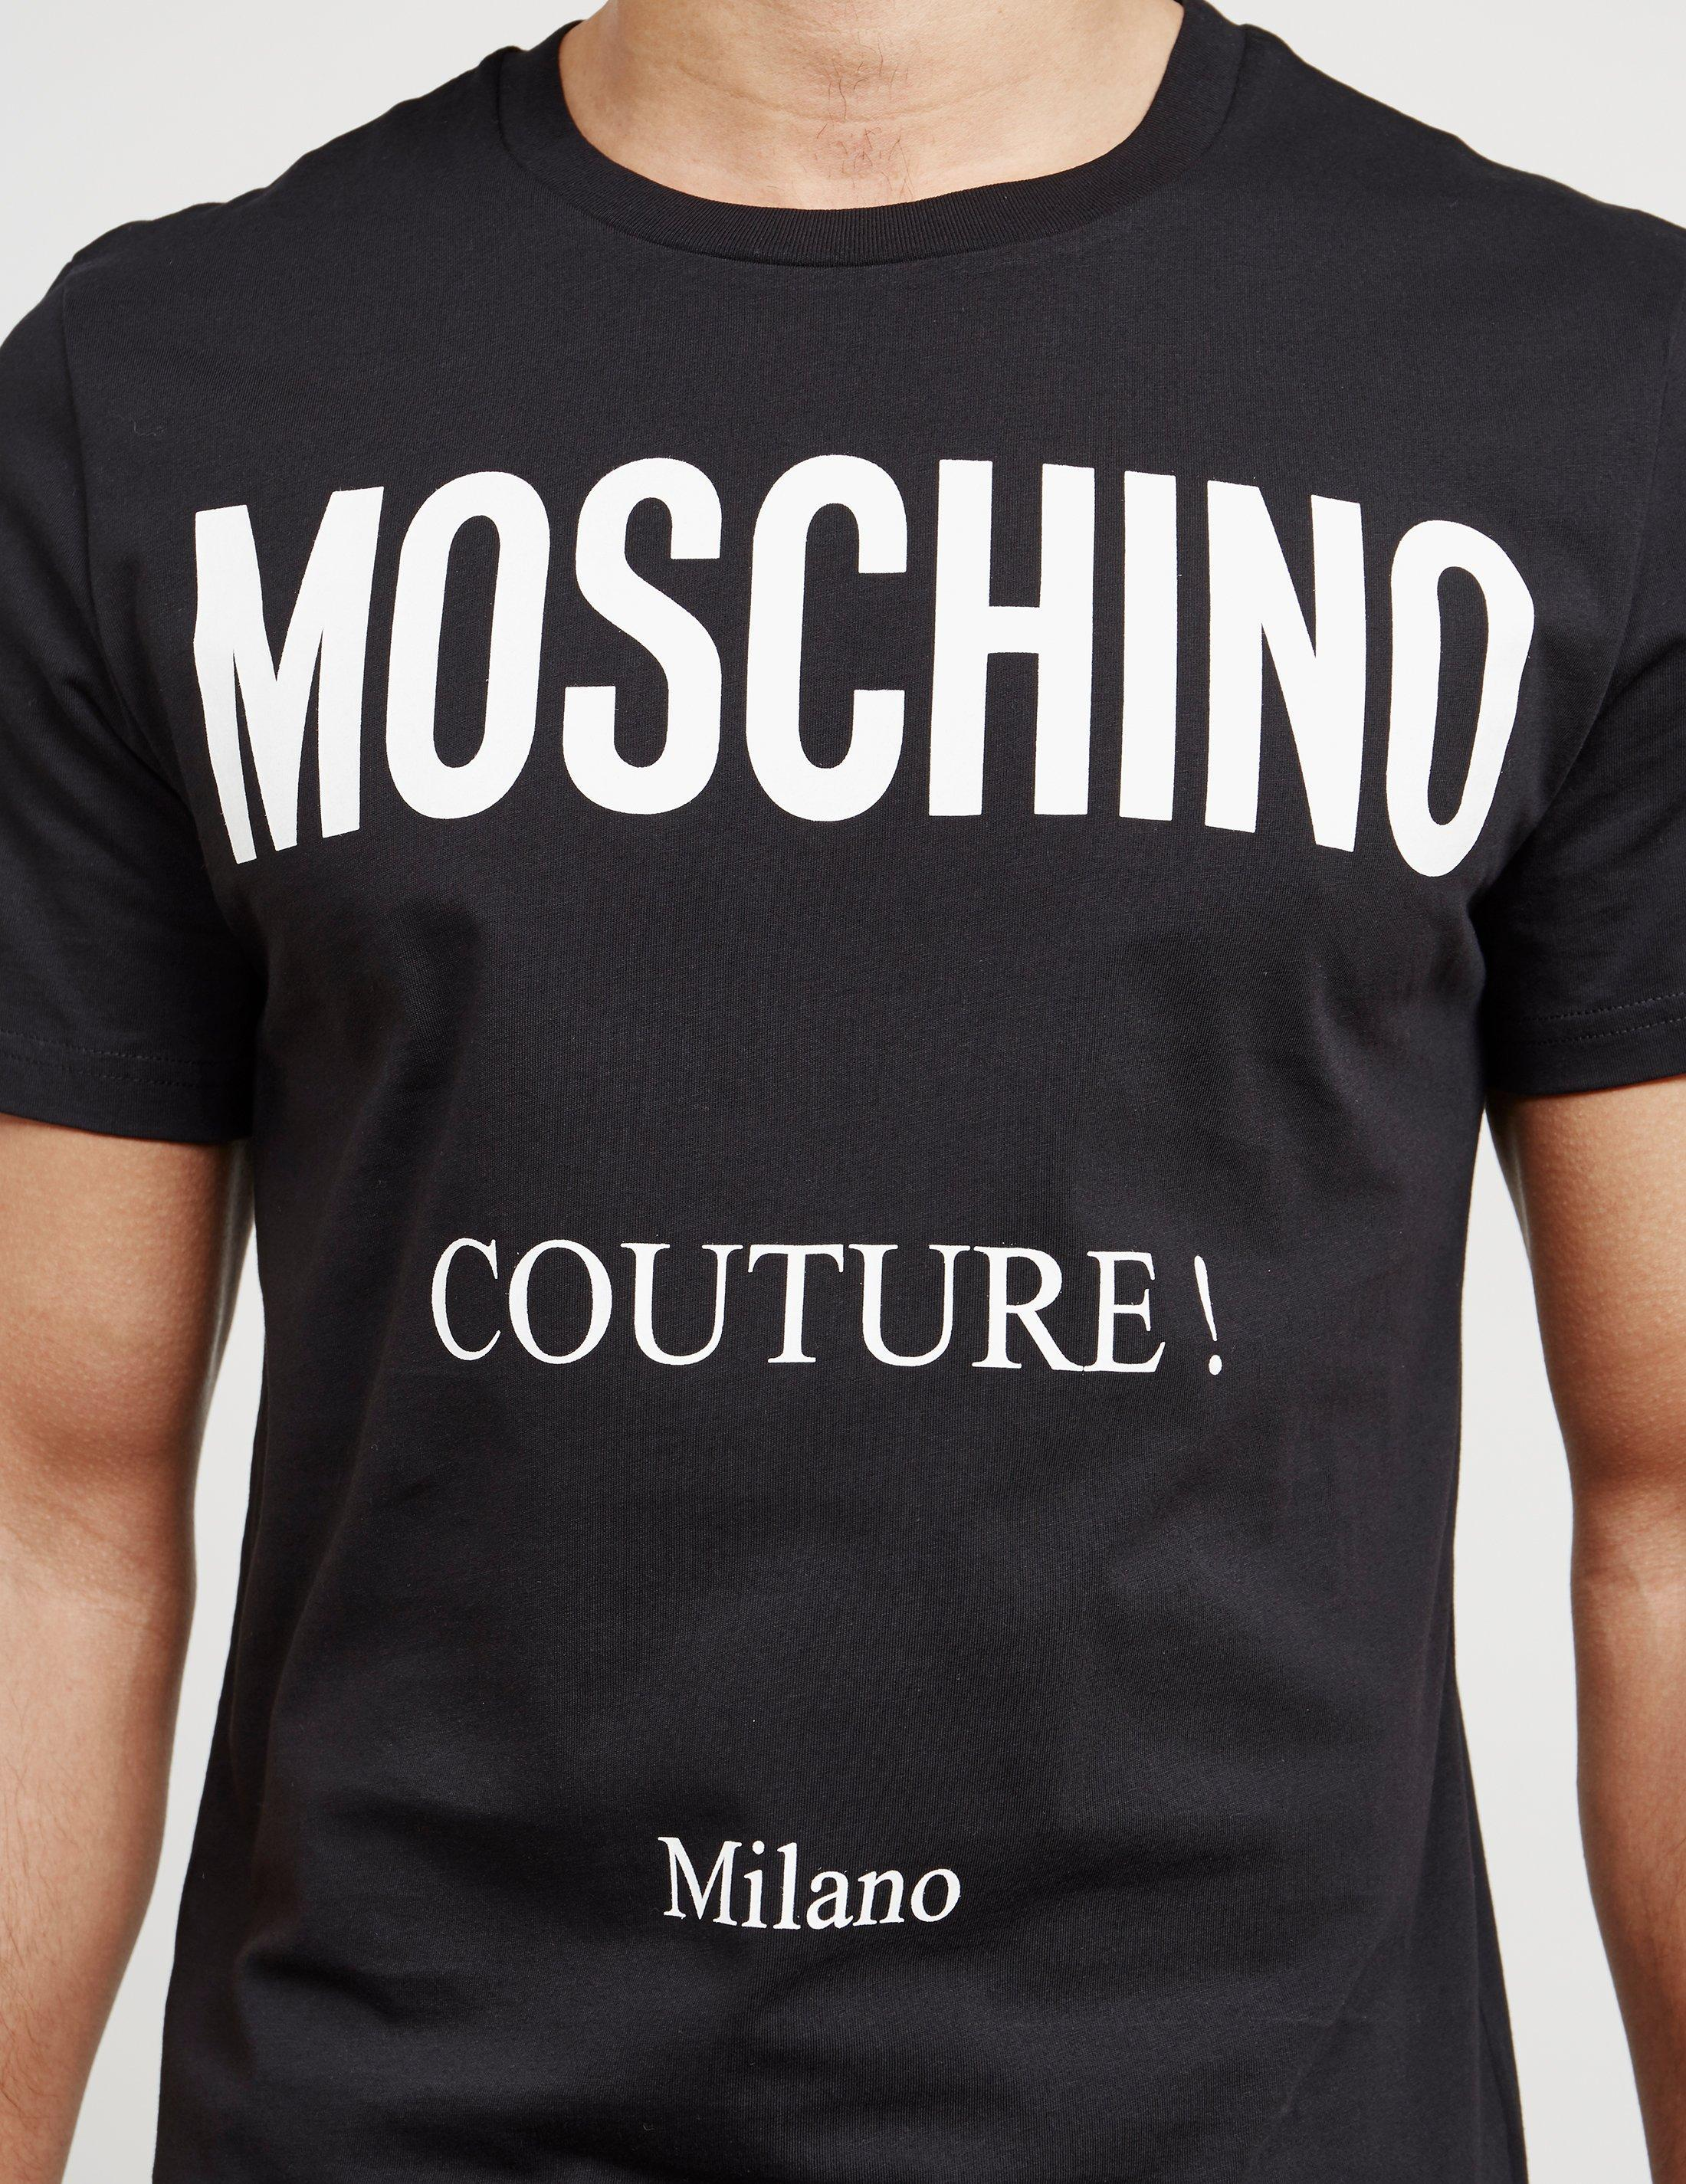 c48aa05ff Moschino Mens Milano Couture Short Sleeve T-shirt Black in Black for ...